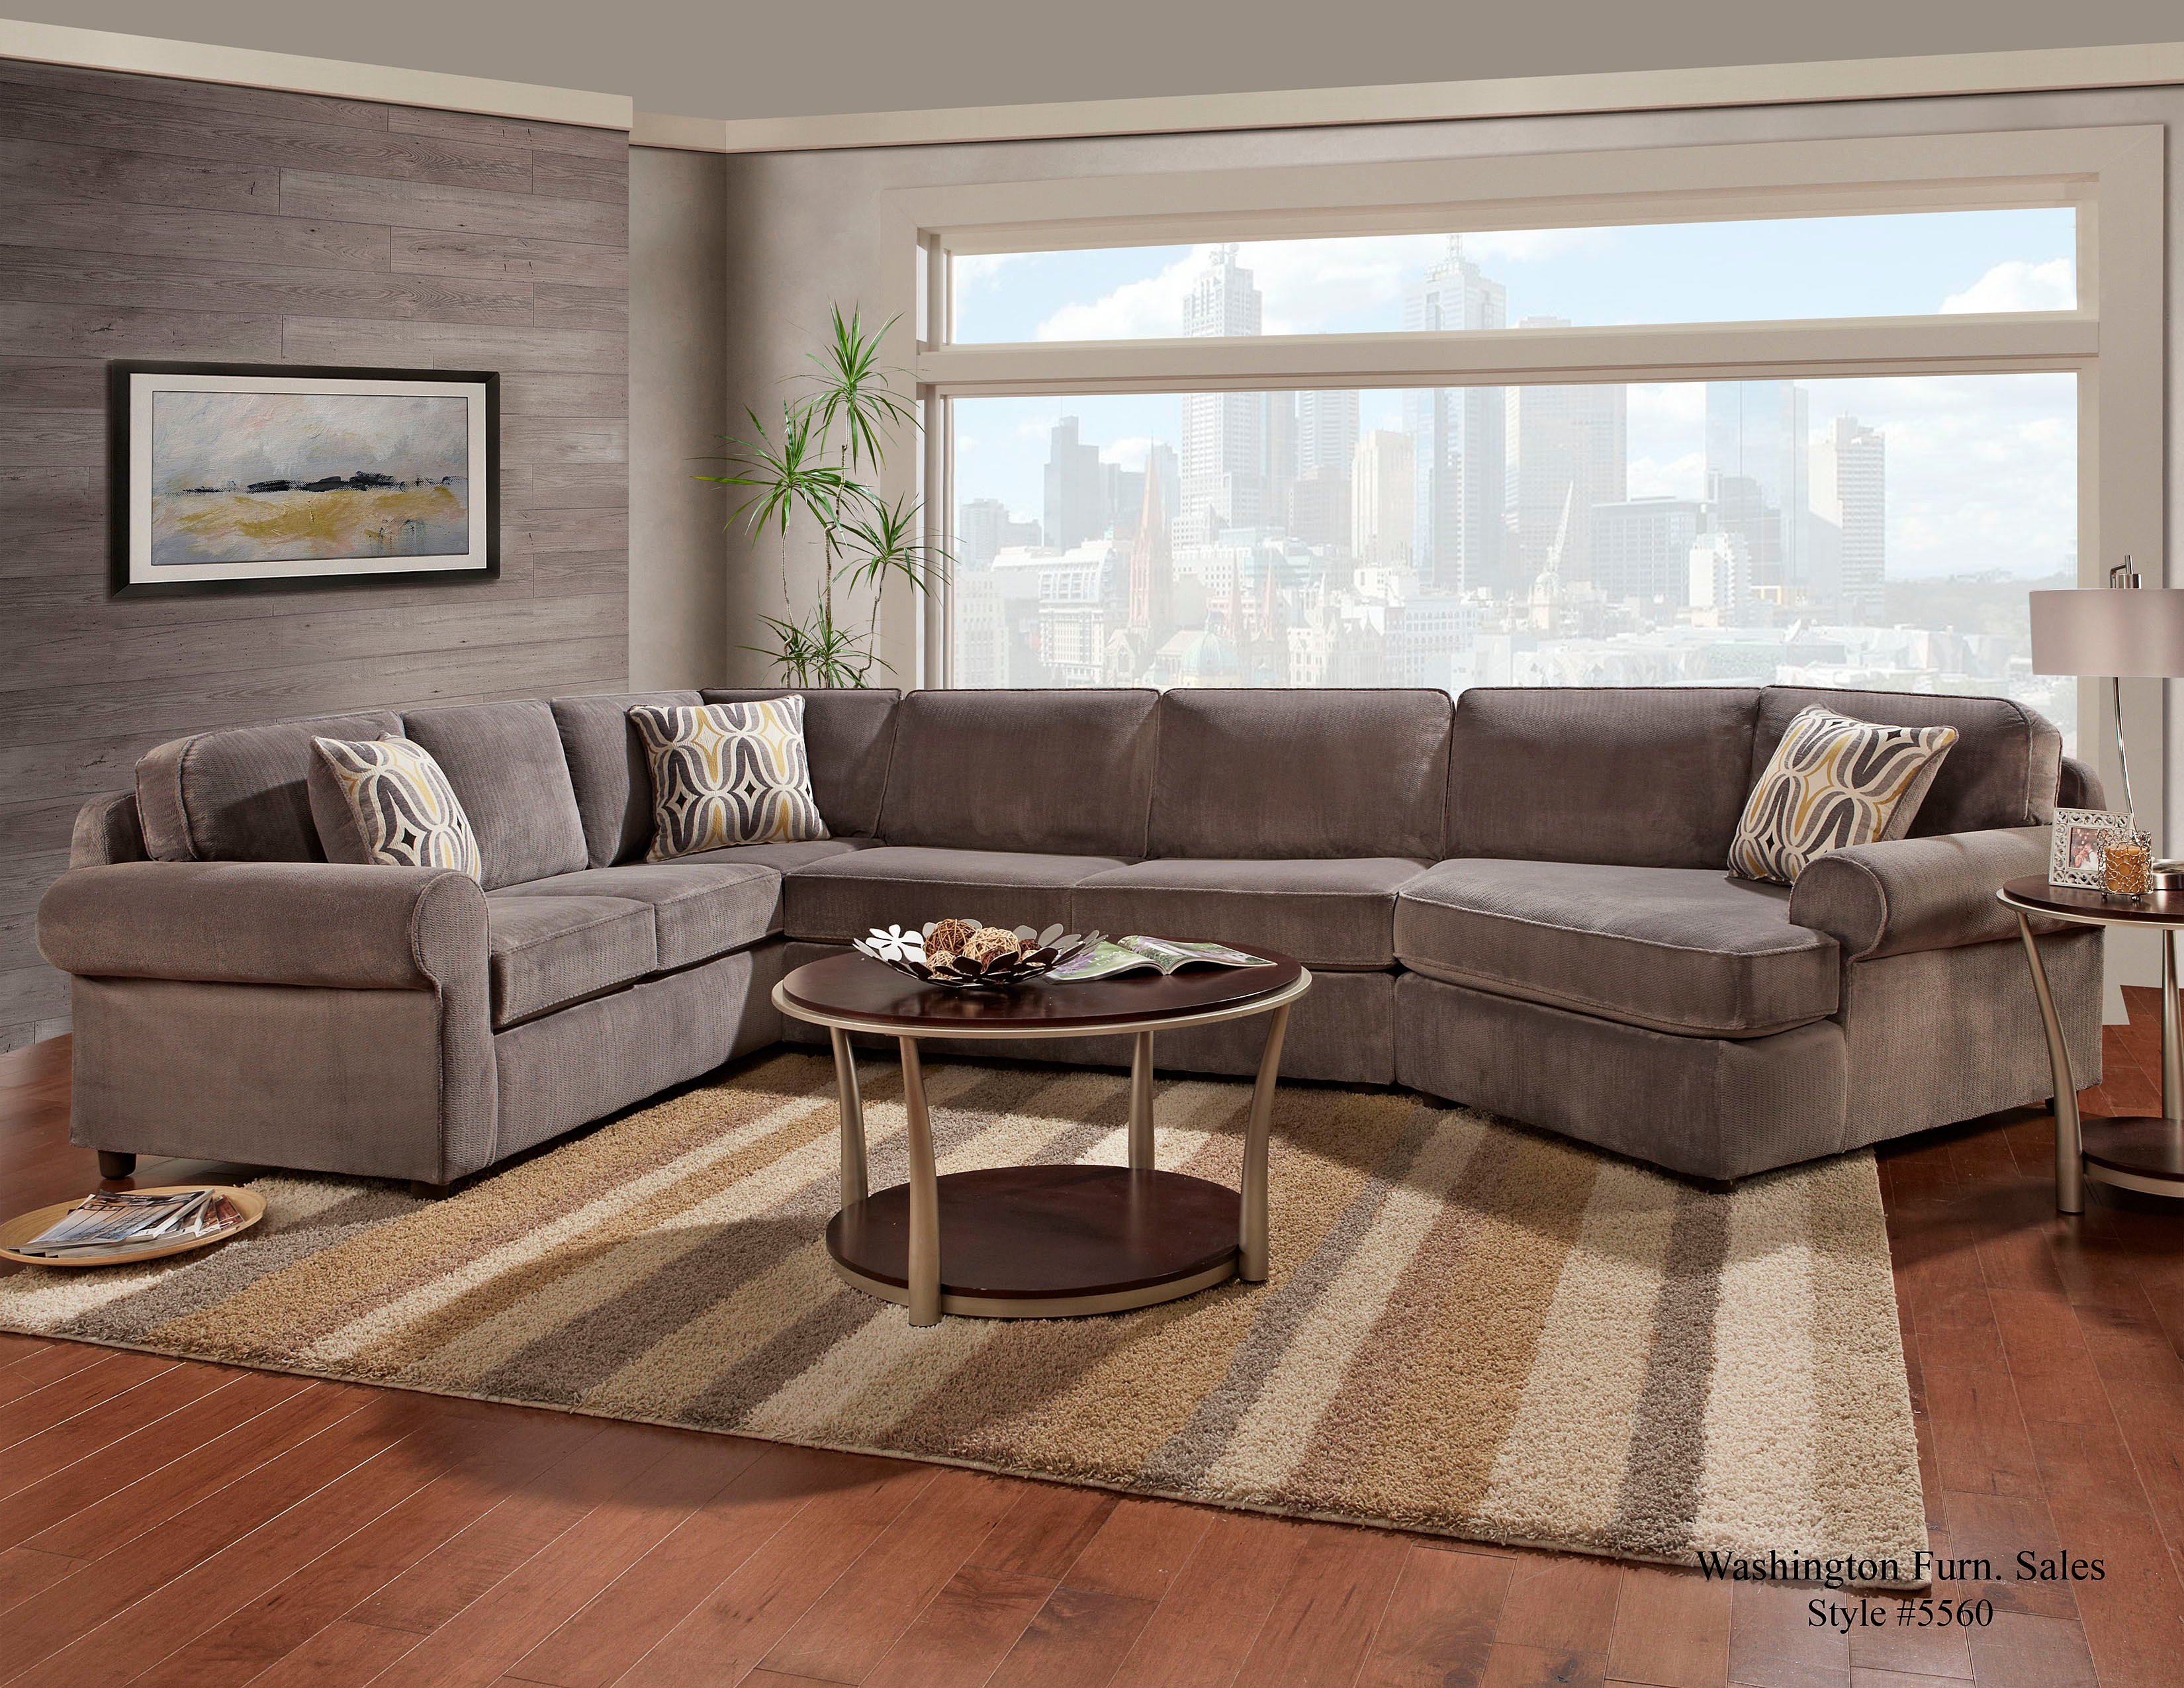 AAA Furniture Outlet Albany Sofas Bedrooms Kitchen Tables Sectionals